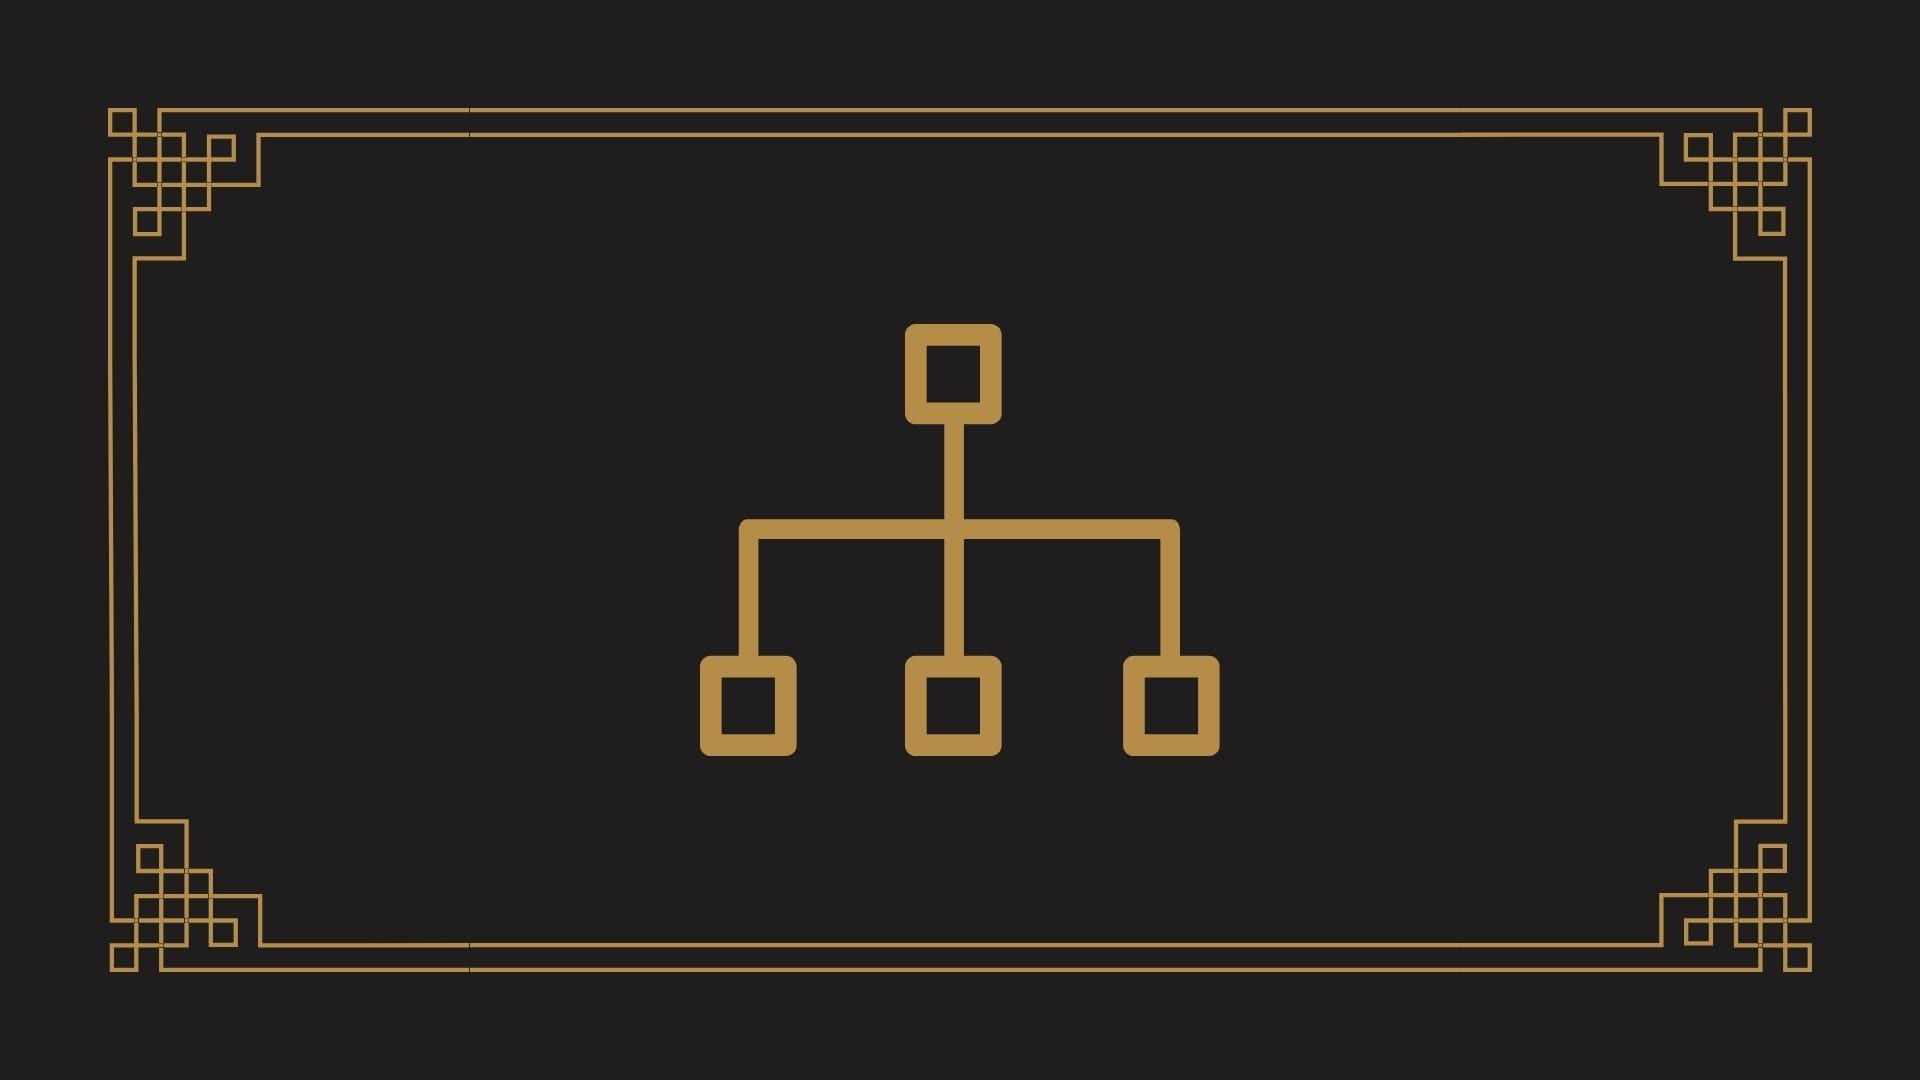 A golden silo diagram crown on a black background.